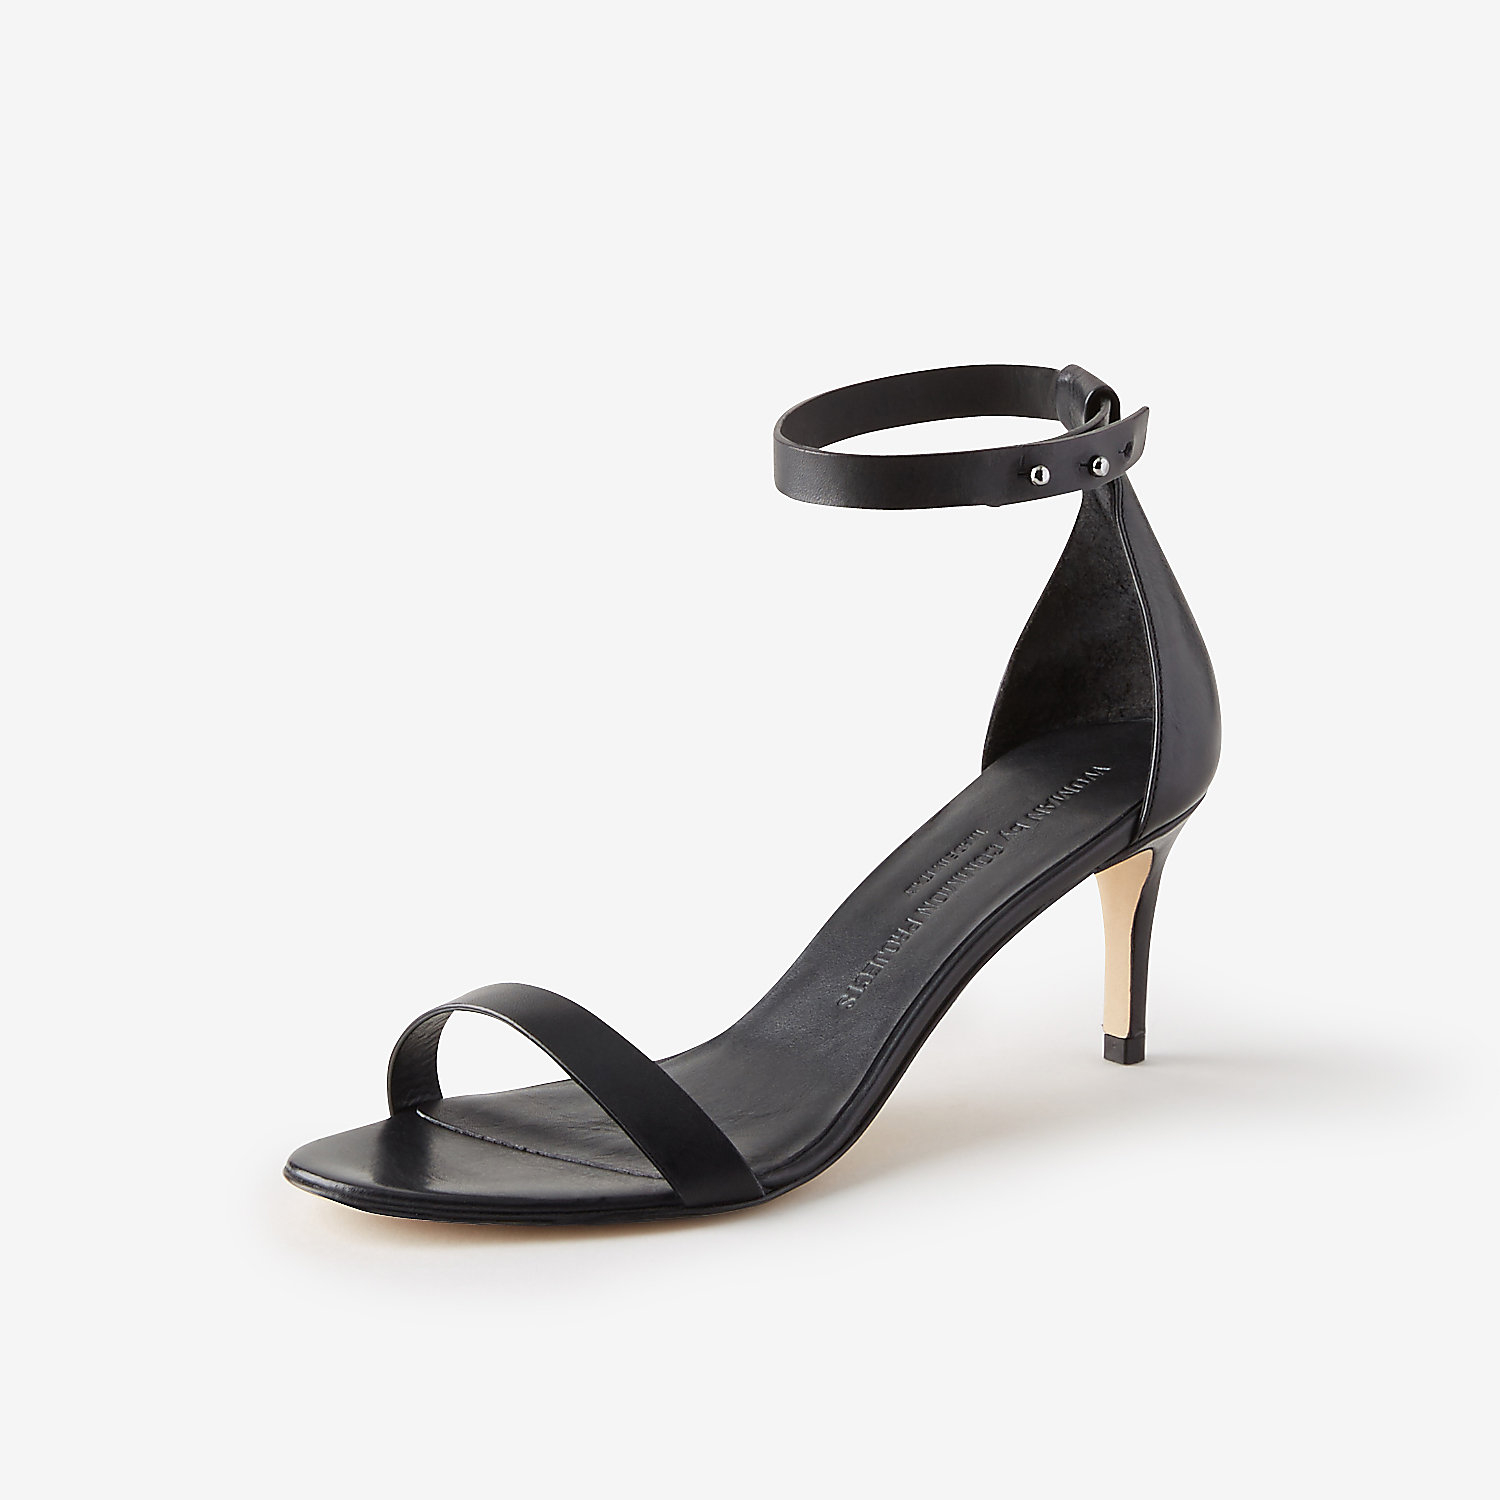 Black Sandals For Women Low Heel With Unique Image – playzoa.com